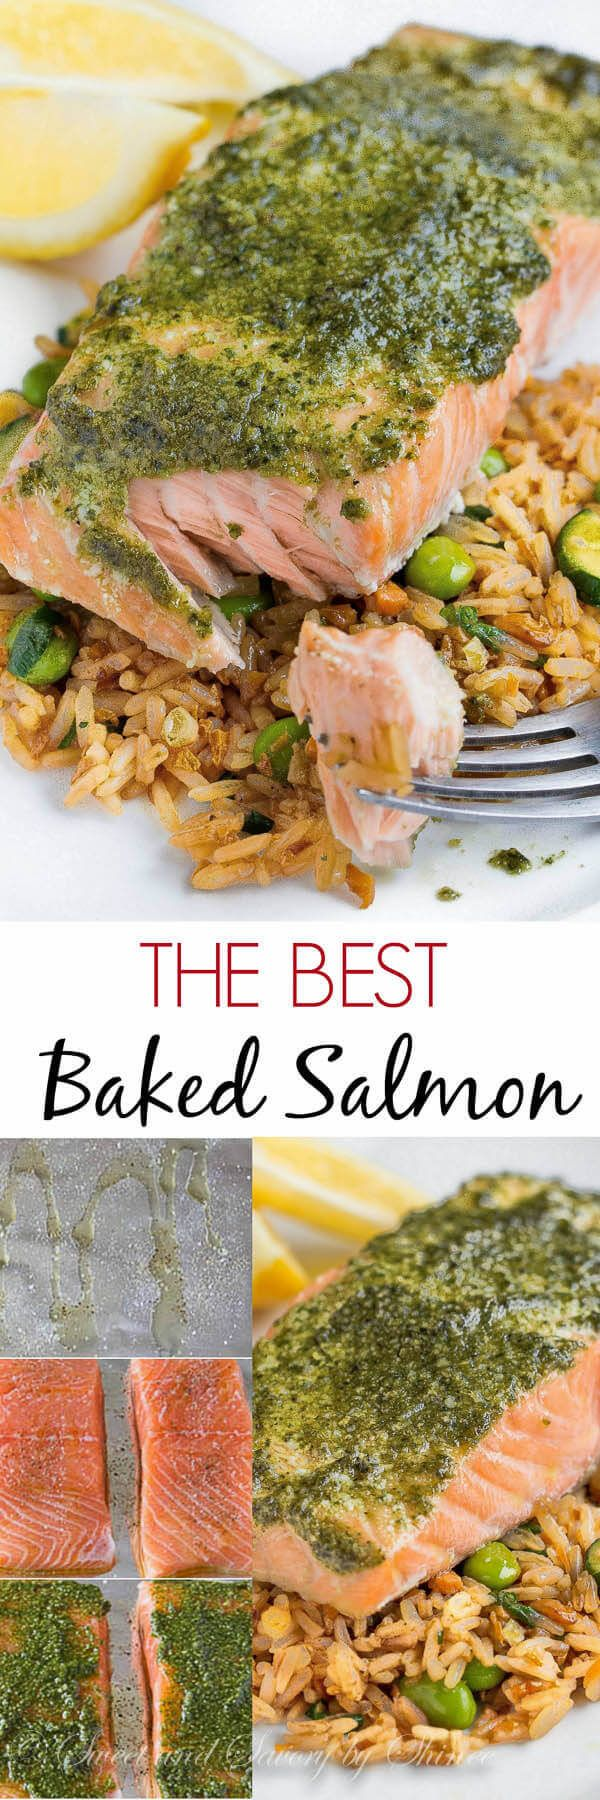 Baked Salmon with Pesto. Easy instructions for a simple oven cooked salmon. Bake at 300 for 15-20 minutes. With a tablespoon or two if pesto spread atop each fillet? Deeee-lish!